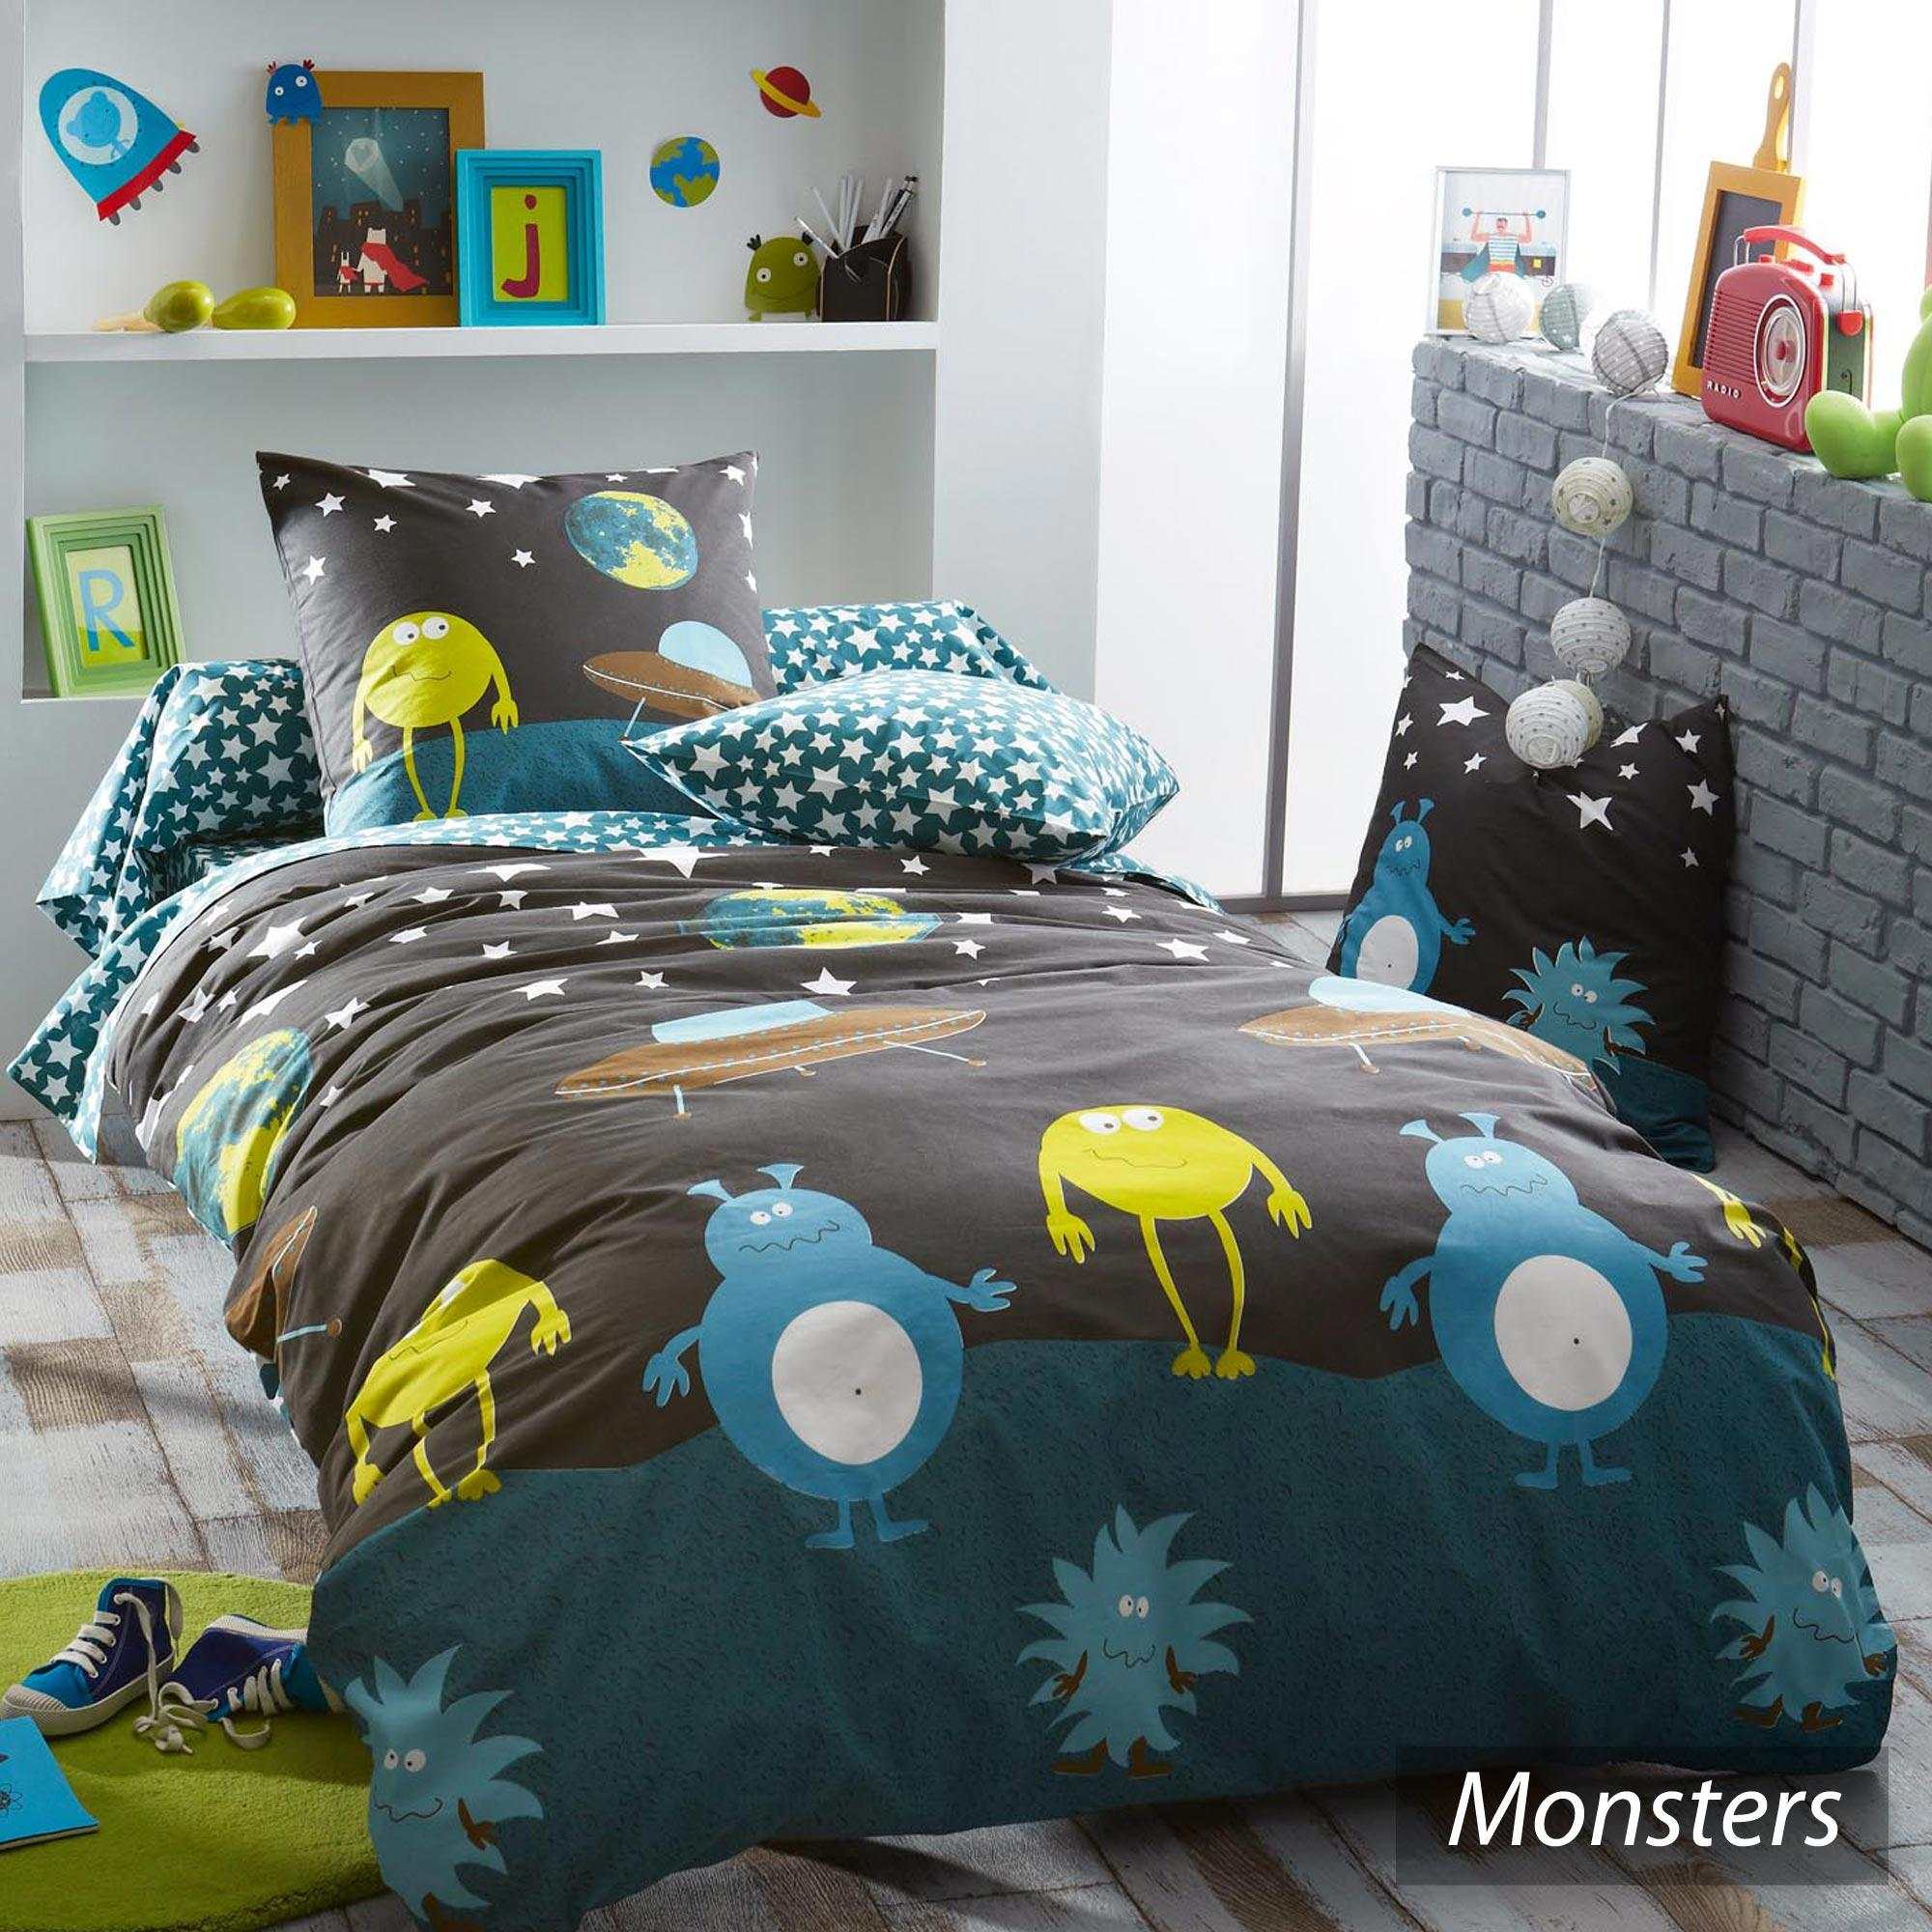 parure de lit 200x200 cm monsters linnea vente de linge. Black Bedroom Furniture Sets. Home Design Ideas